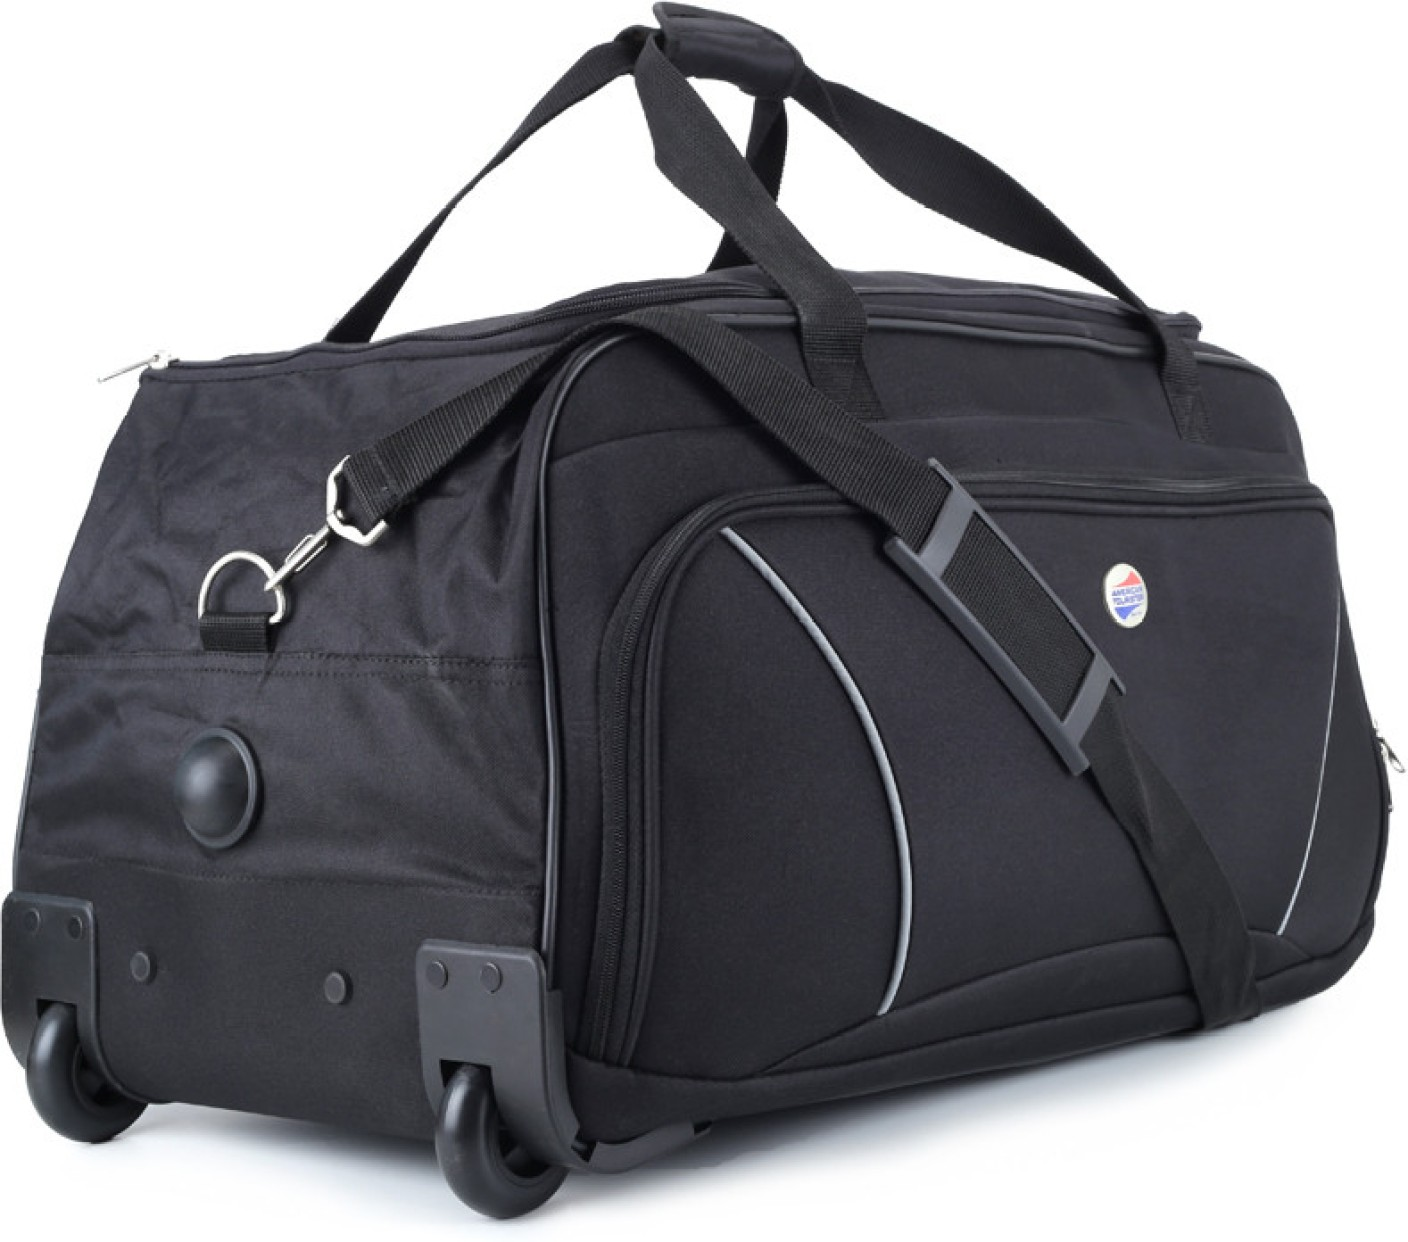 Travel Bags With Side Pockets